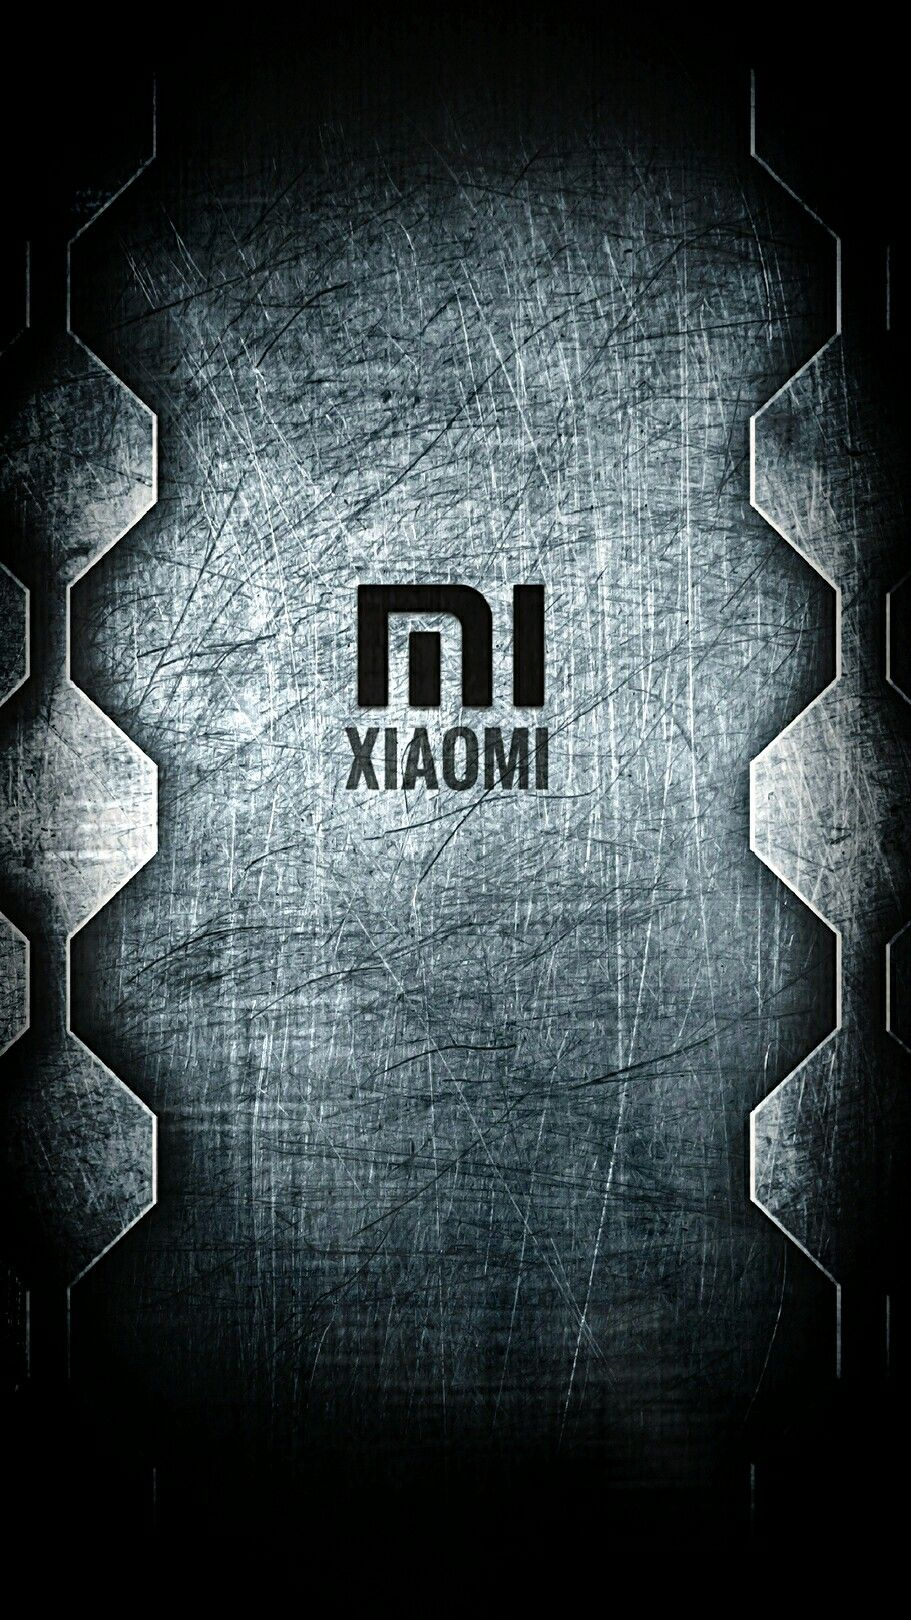 1080 1920px Xiaomi Mobile Wallpaper By Lumir79